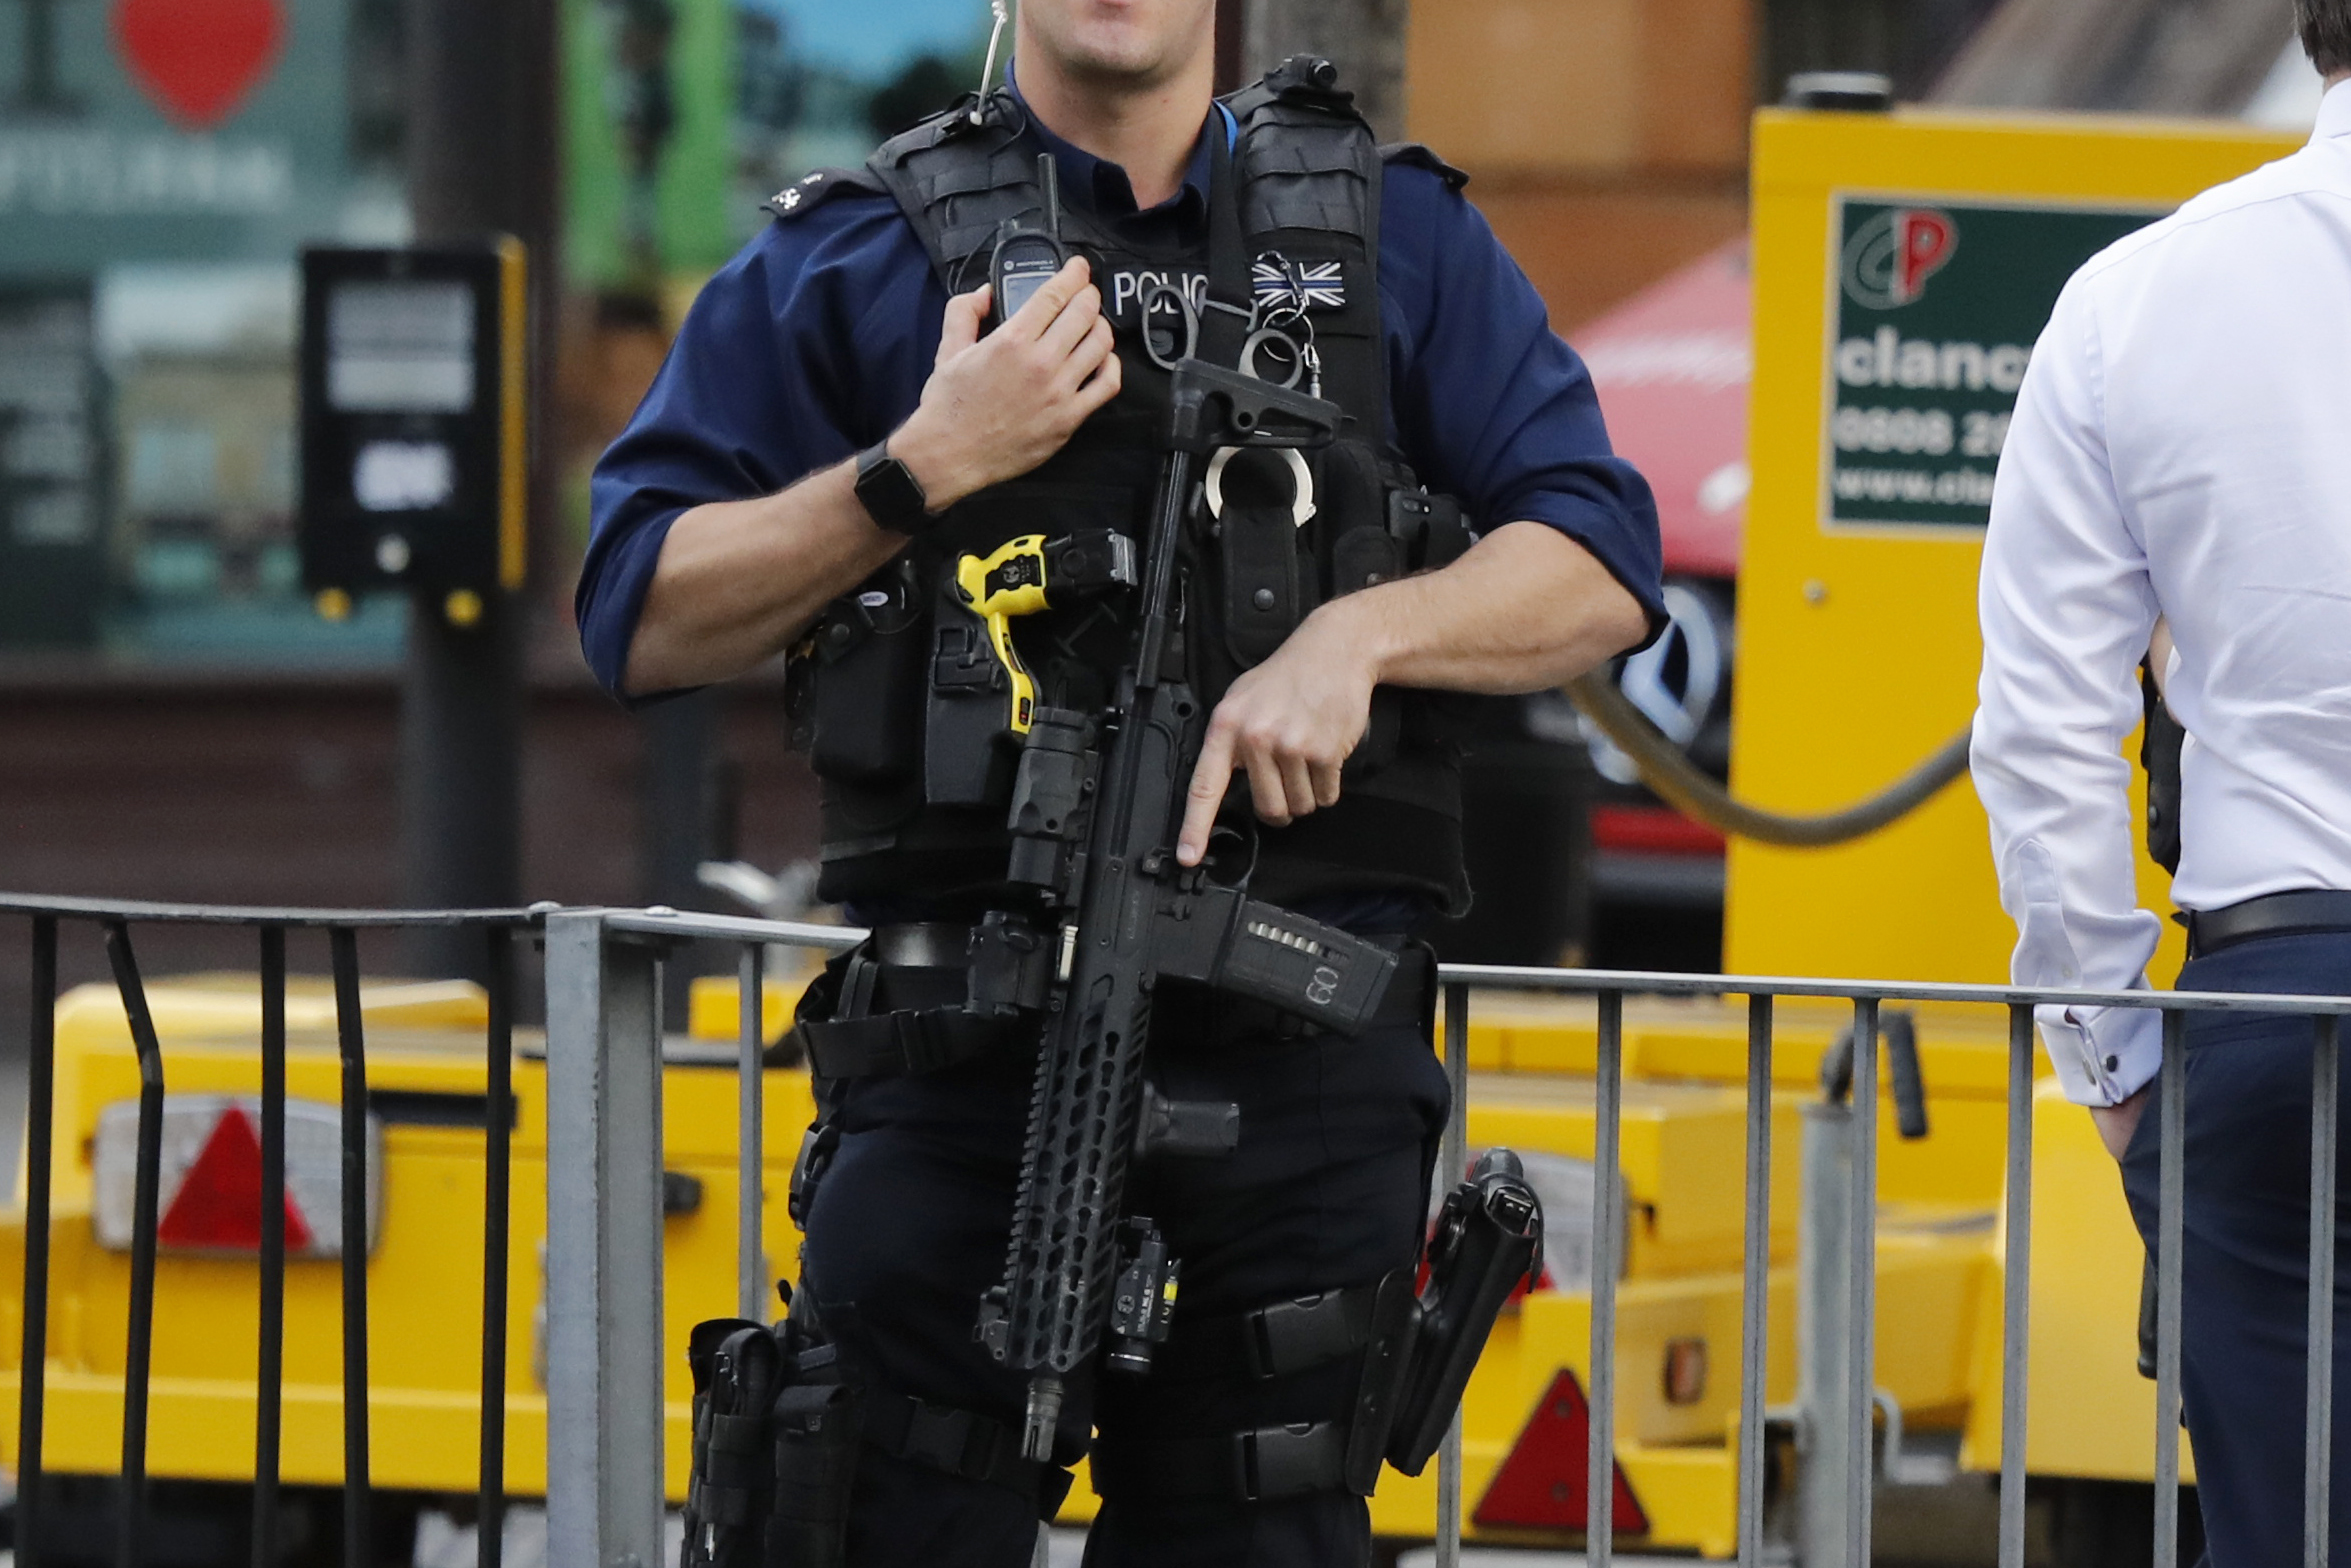 "<div class=""meta image-caption""><div class=""origin-logo origin-image none""><span>none</span></div><span class=""caption-text"">An armed police officer stands nearby after an incident on a tube train at Parsons Green subway station in London, Friday, Sept. 15, 2017. (Frank Augstein/AP Photo)</span></div>"